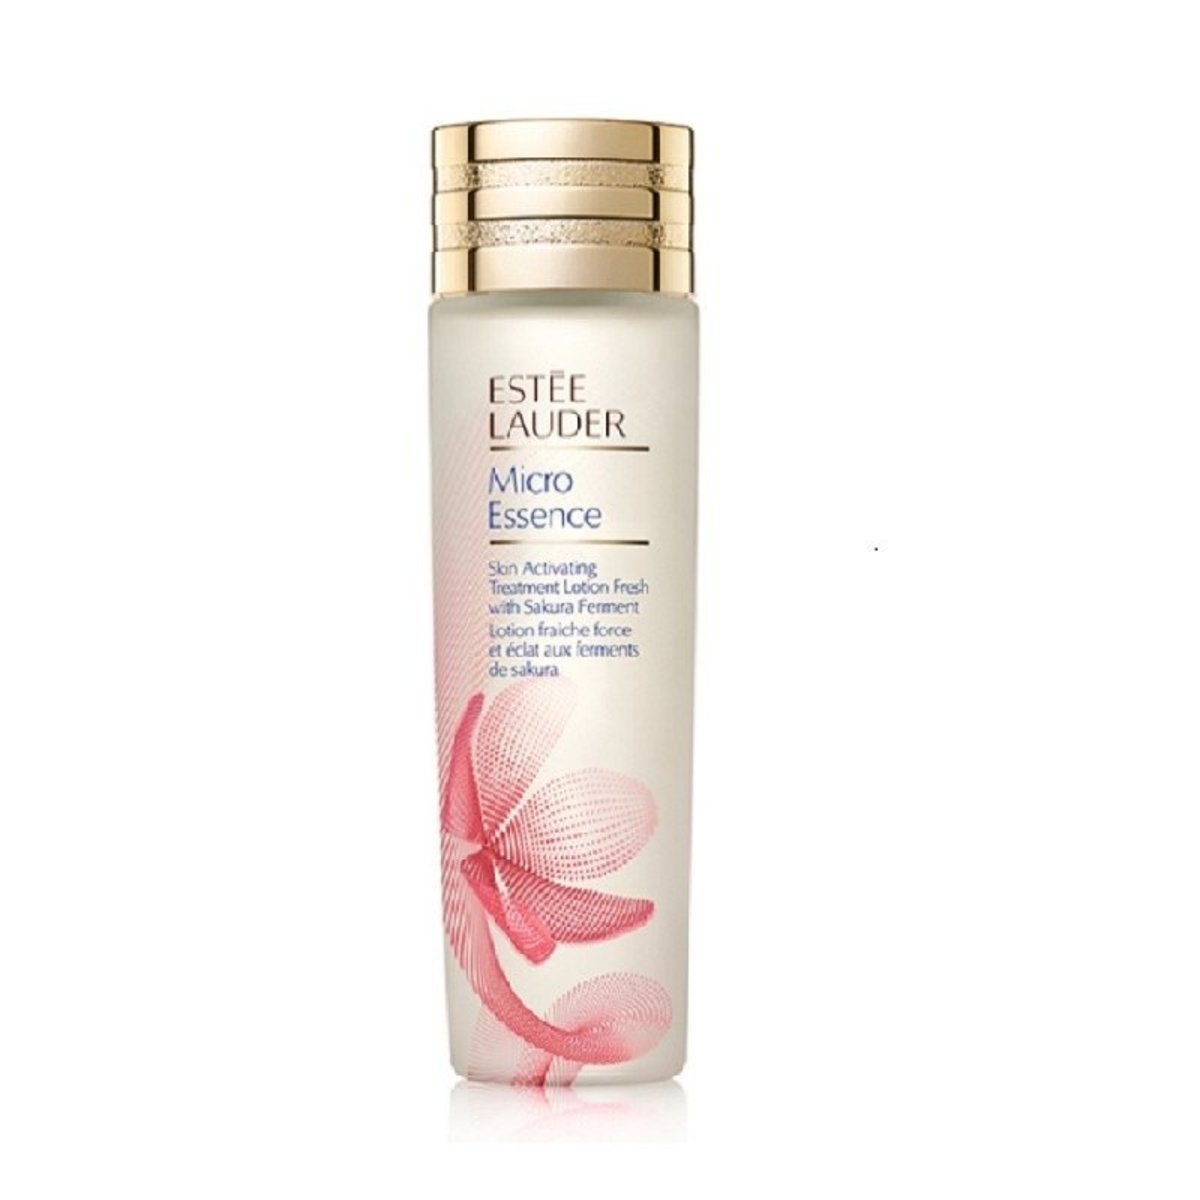 Micro Essence Skin Activating Treatment Lotion Fresh with Sakura Ferment 200ml (Parallel Import)